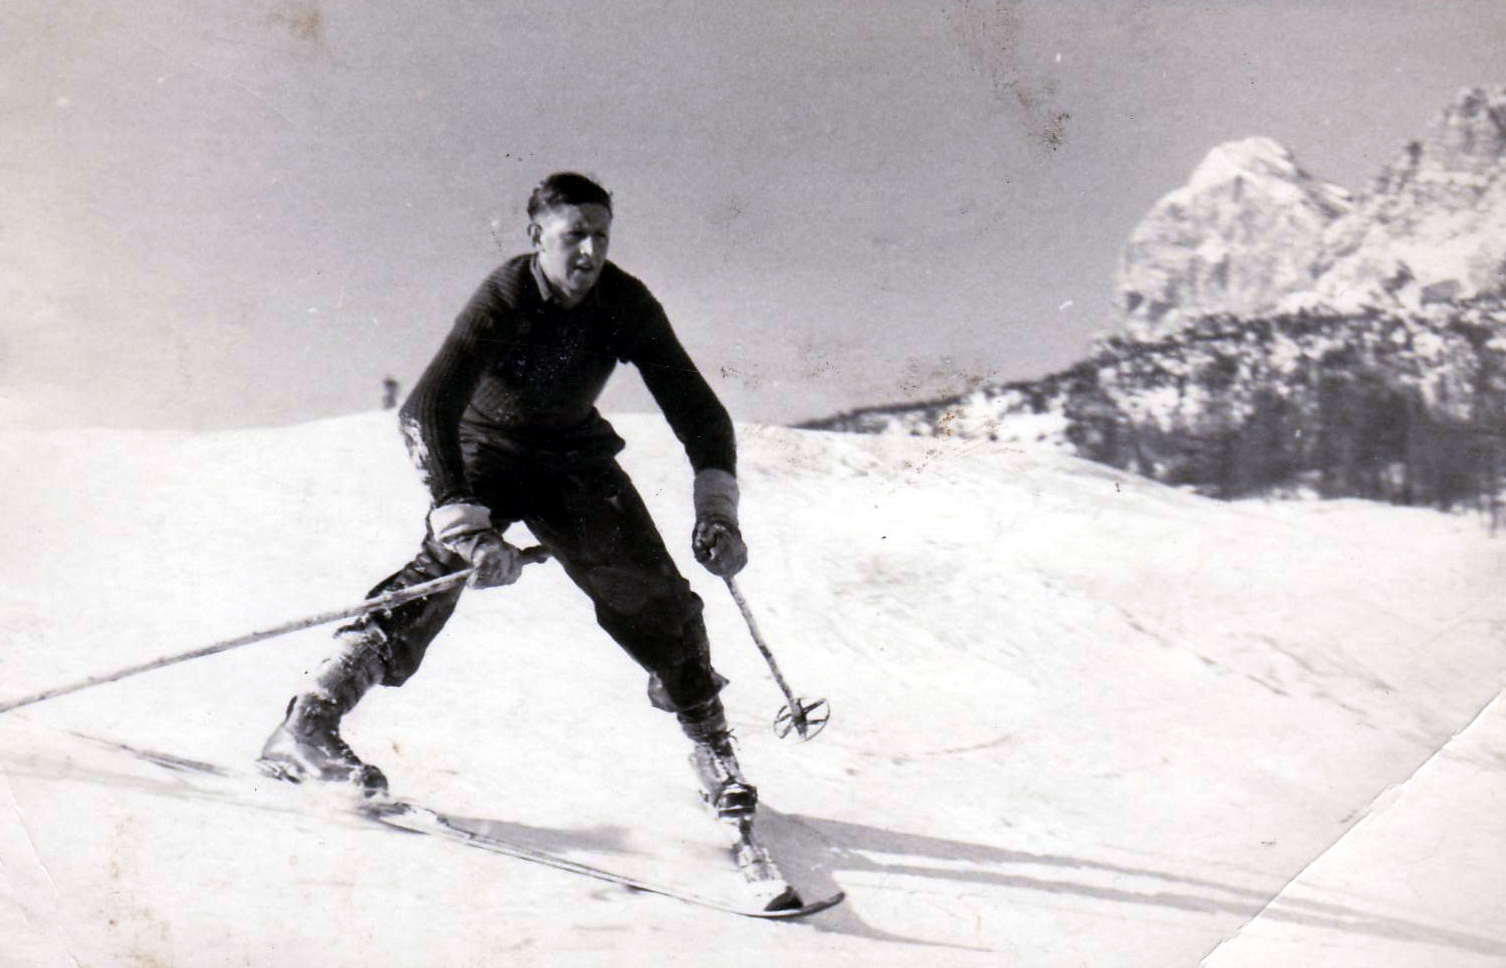 Man Skiing In The Mountains 1950s